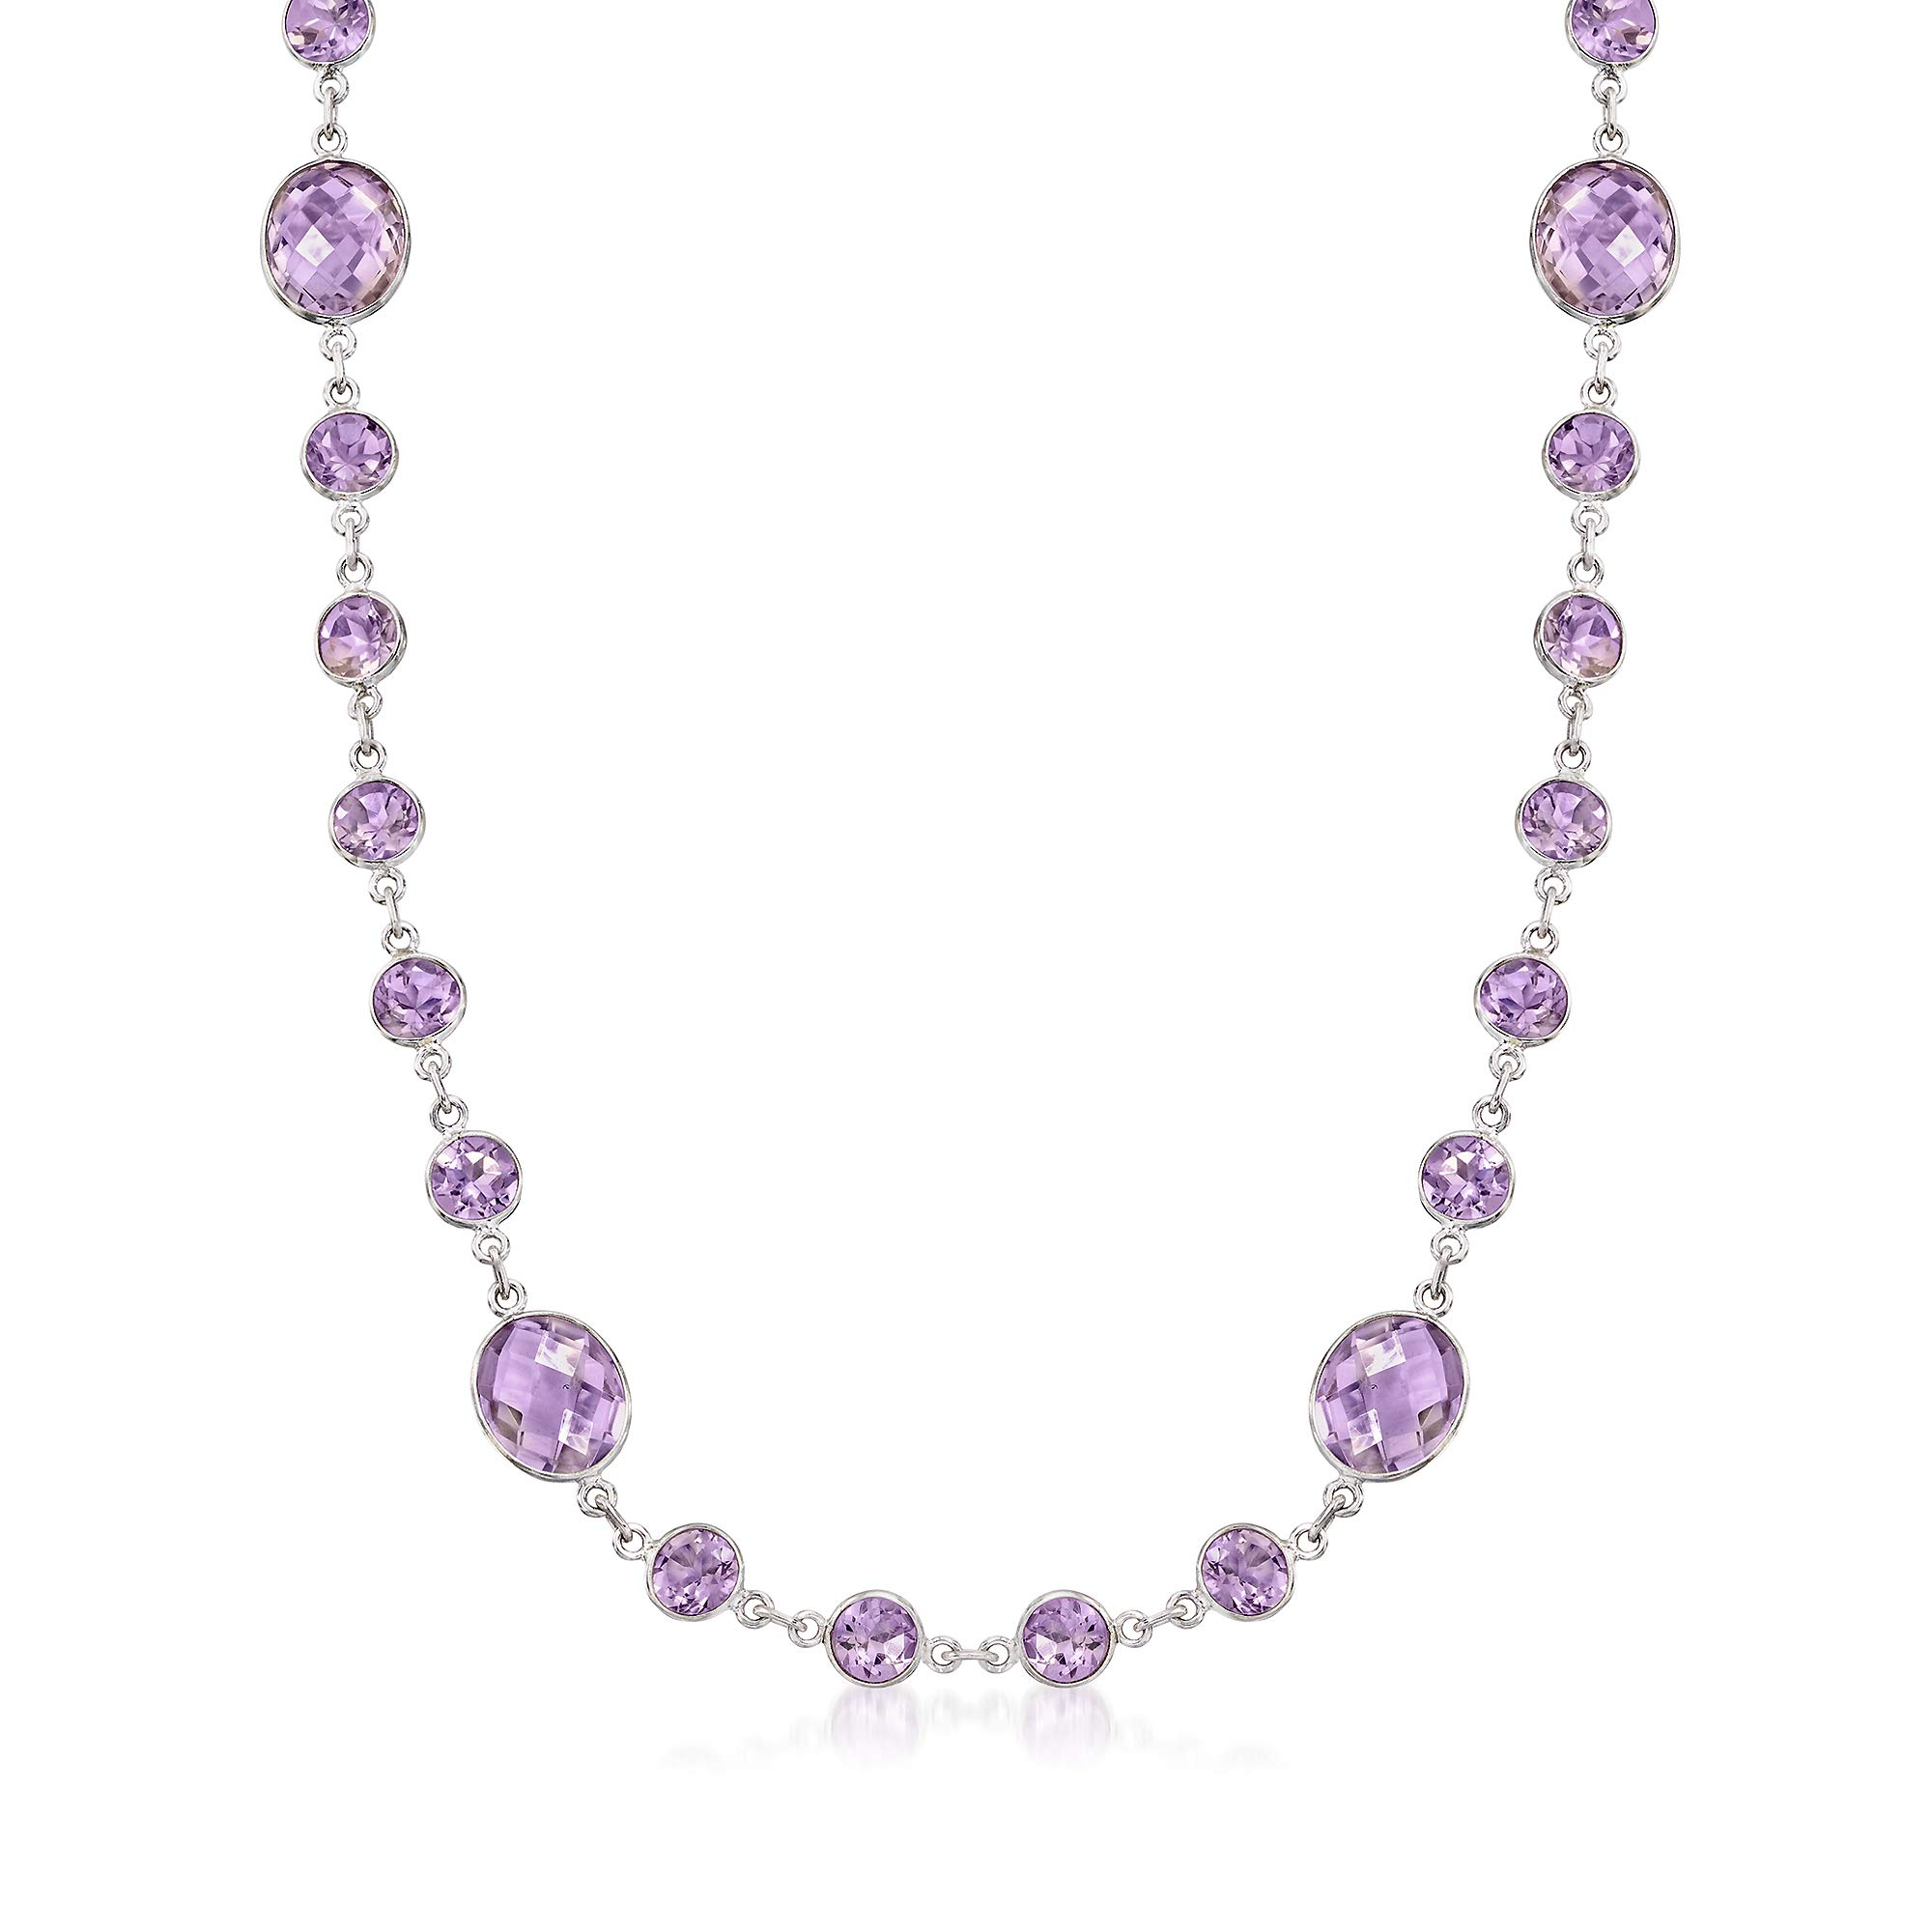 Ross-Simons 50.00 ct. t.w. Amethyst Necklace in Sterling Silver by Ross-Simons (Image #1)